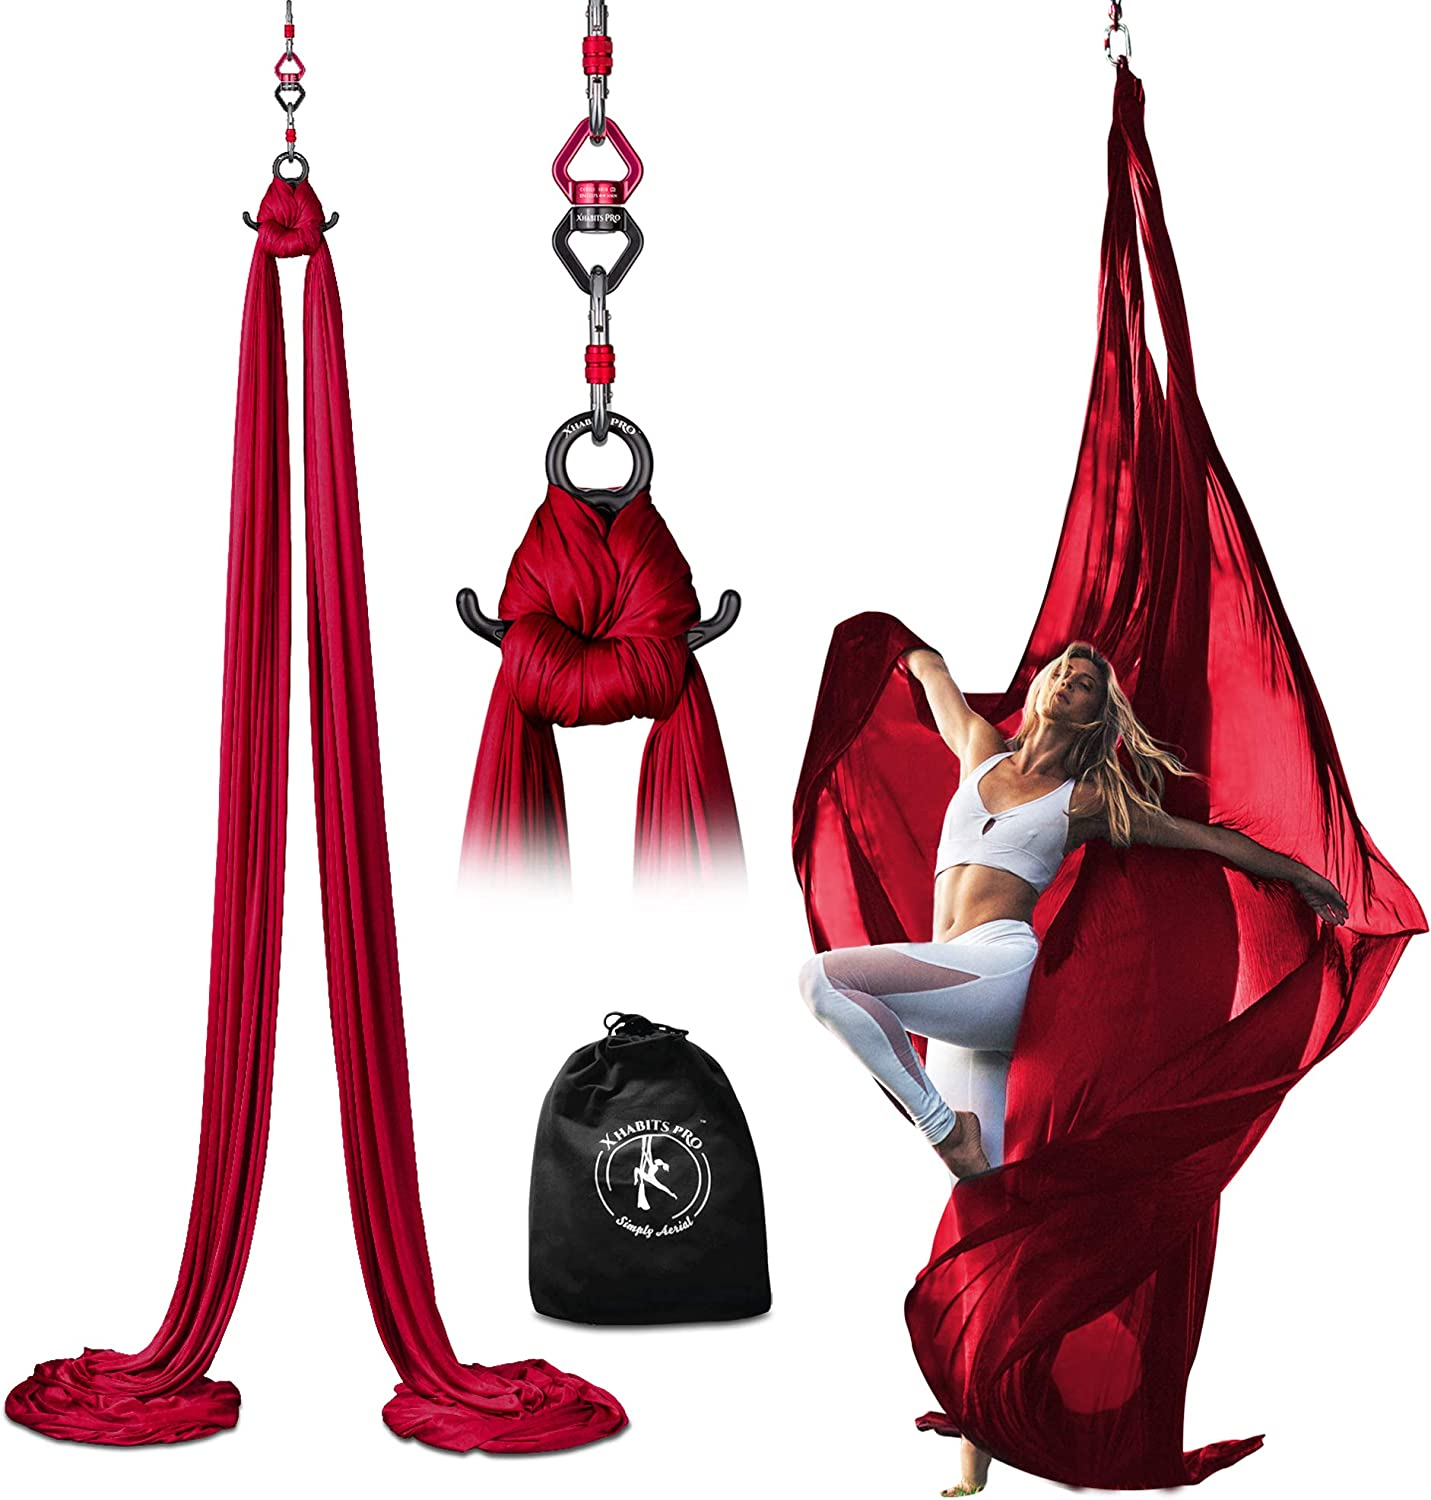 X Habits Pro Professional Aerial Silks Equipment for All Levels - Medium Stretch Aerial Yoga Swing & Hammock Kit - Perfect for Indoor Outdoor Aerial Dance, Circus Arts – All Hardware Included